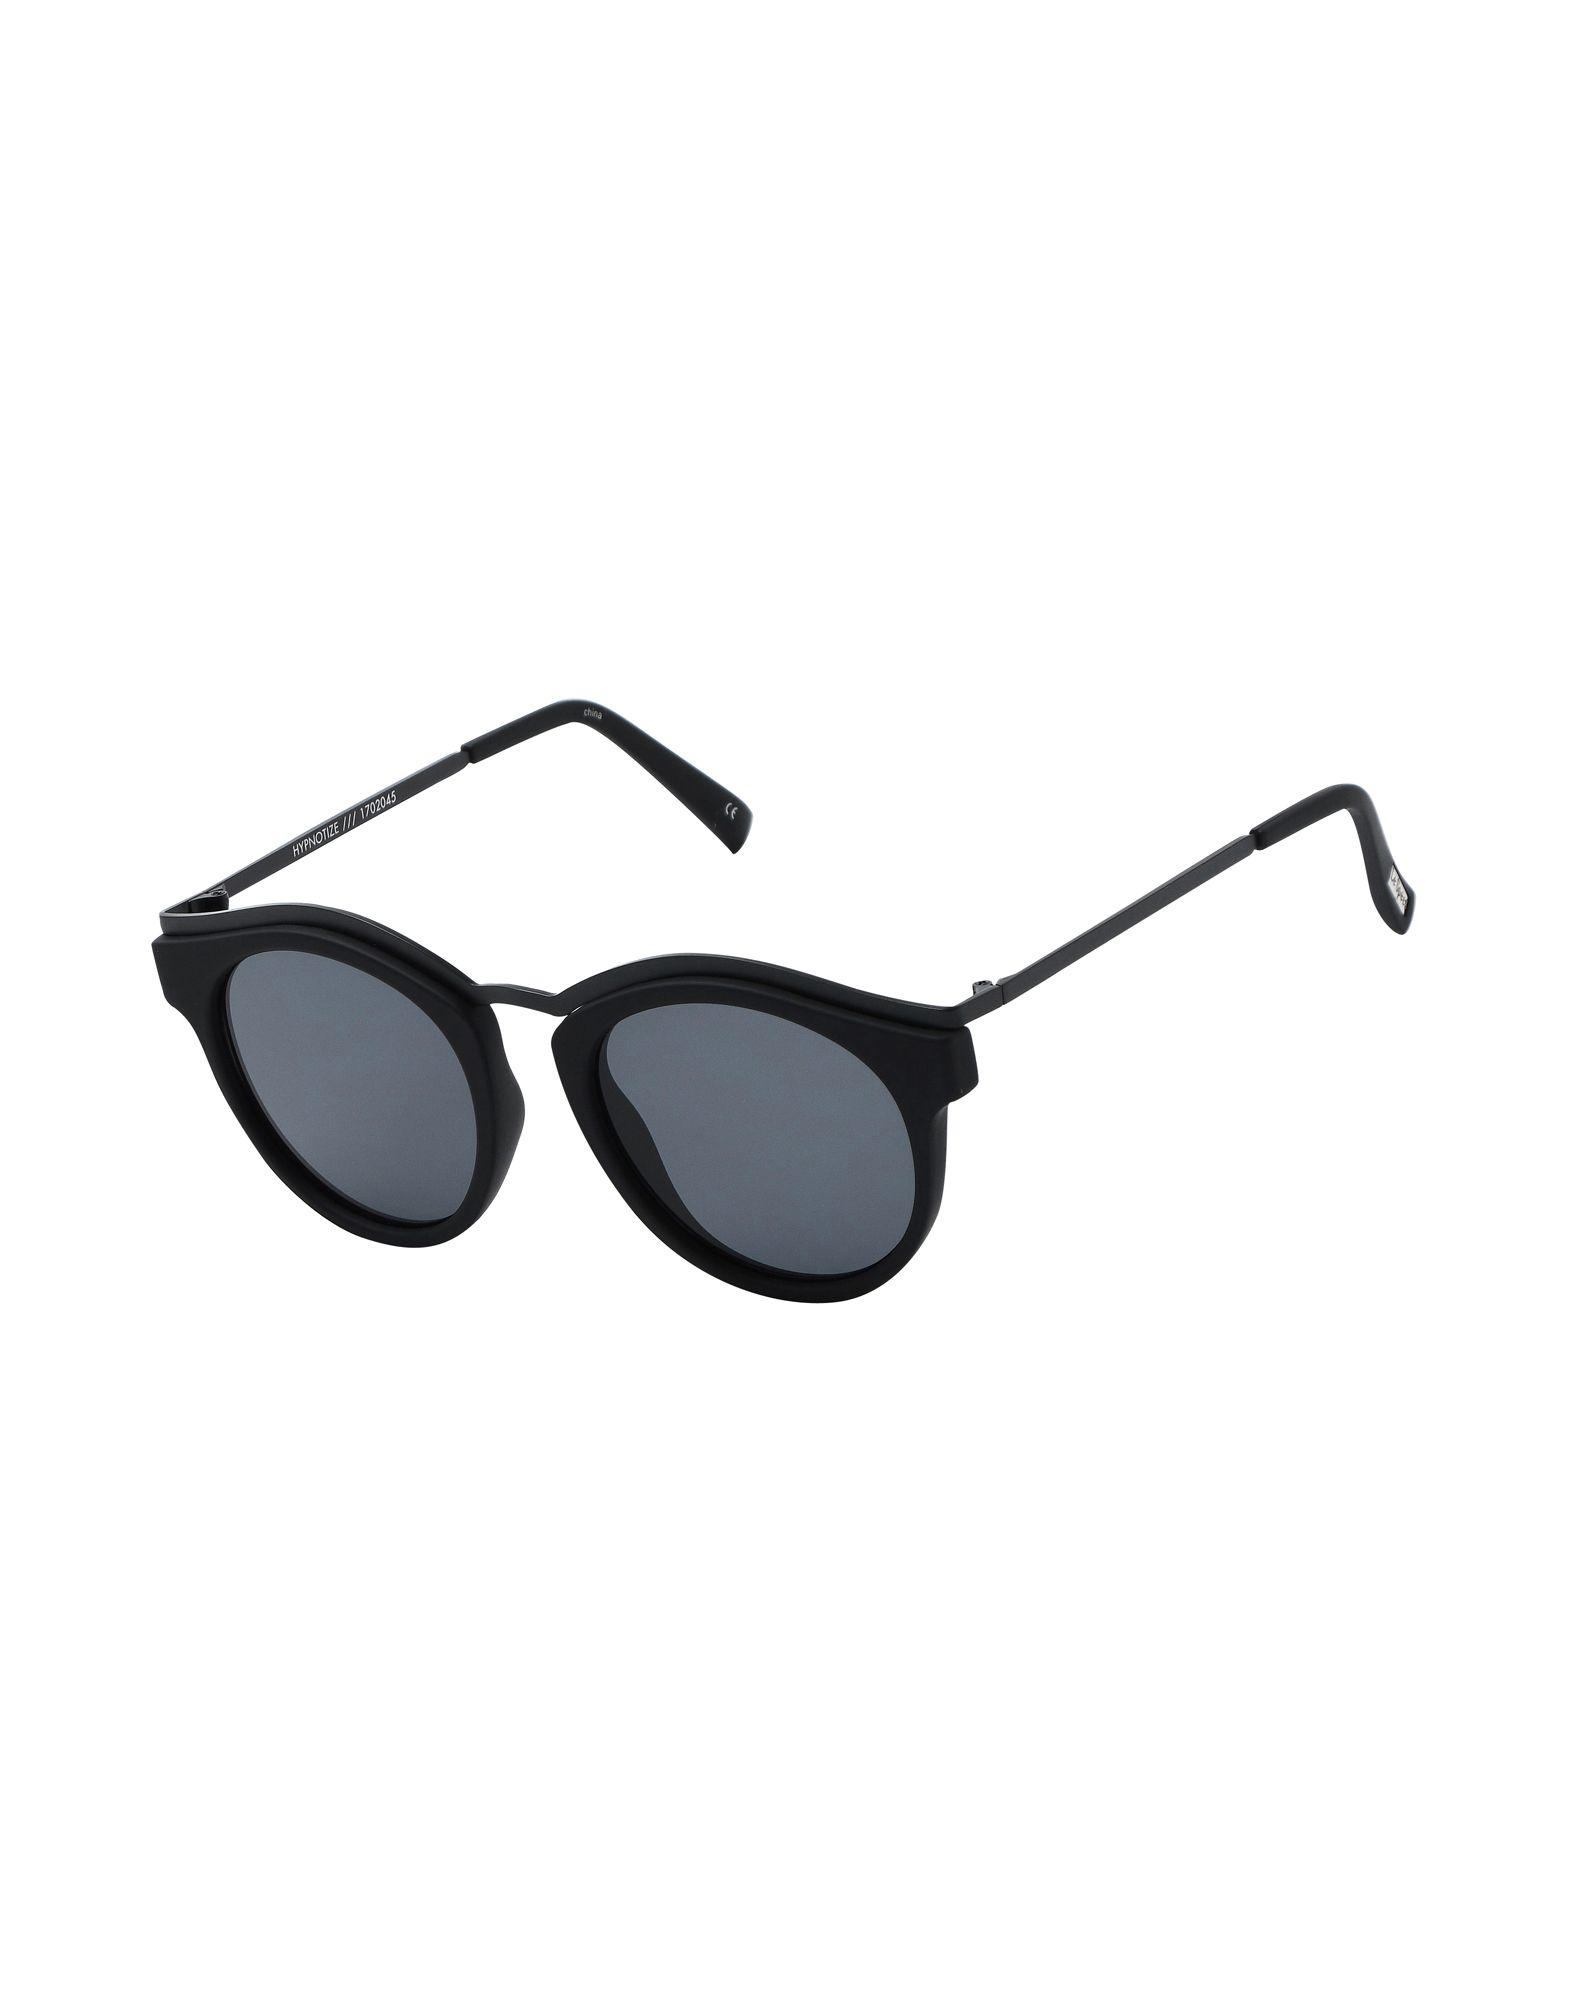 7c8fed444eb Le Specs Sunglasses in Black - Save 56.52173913043478% - Lyst